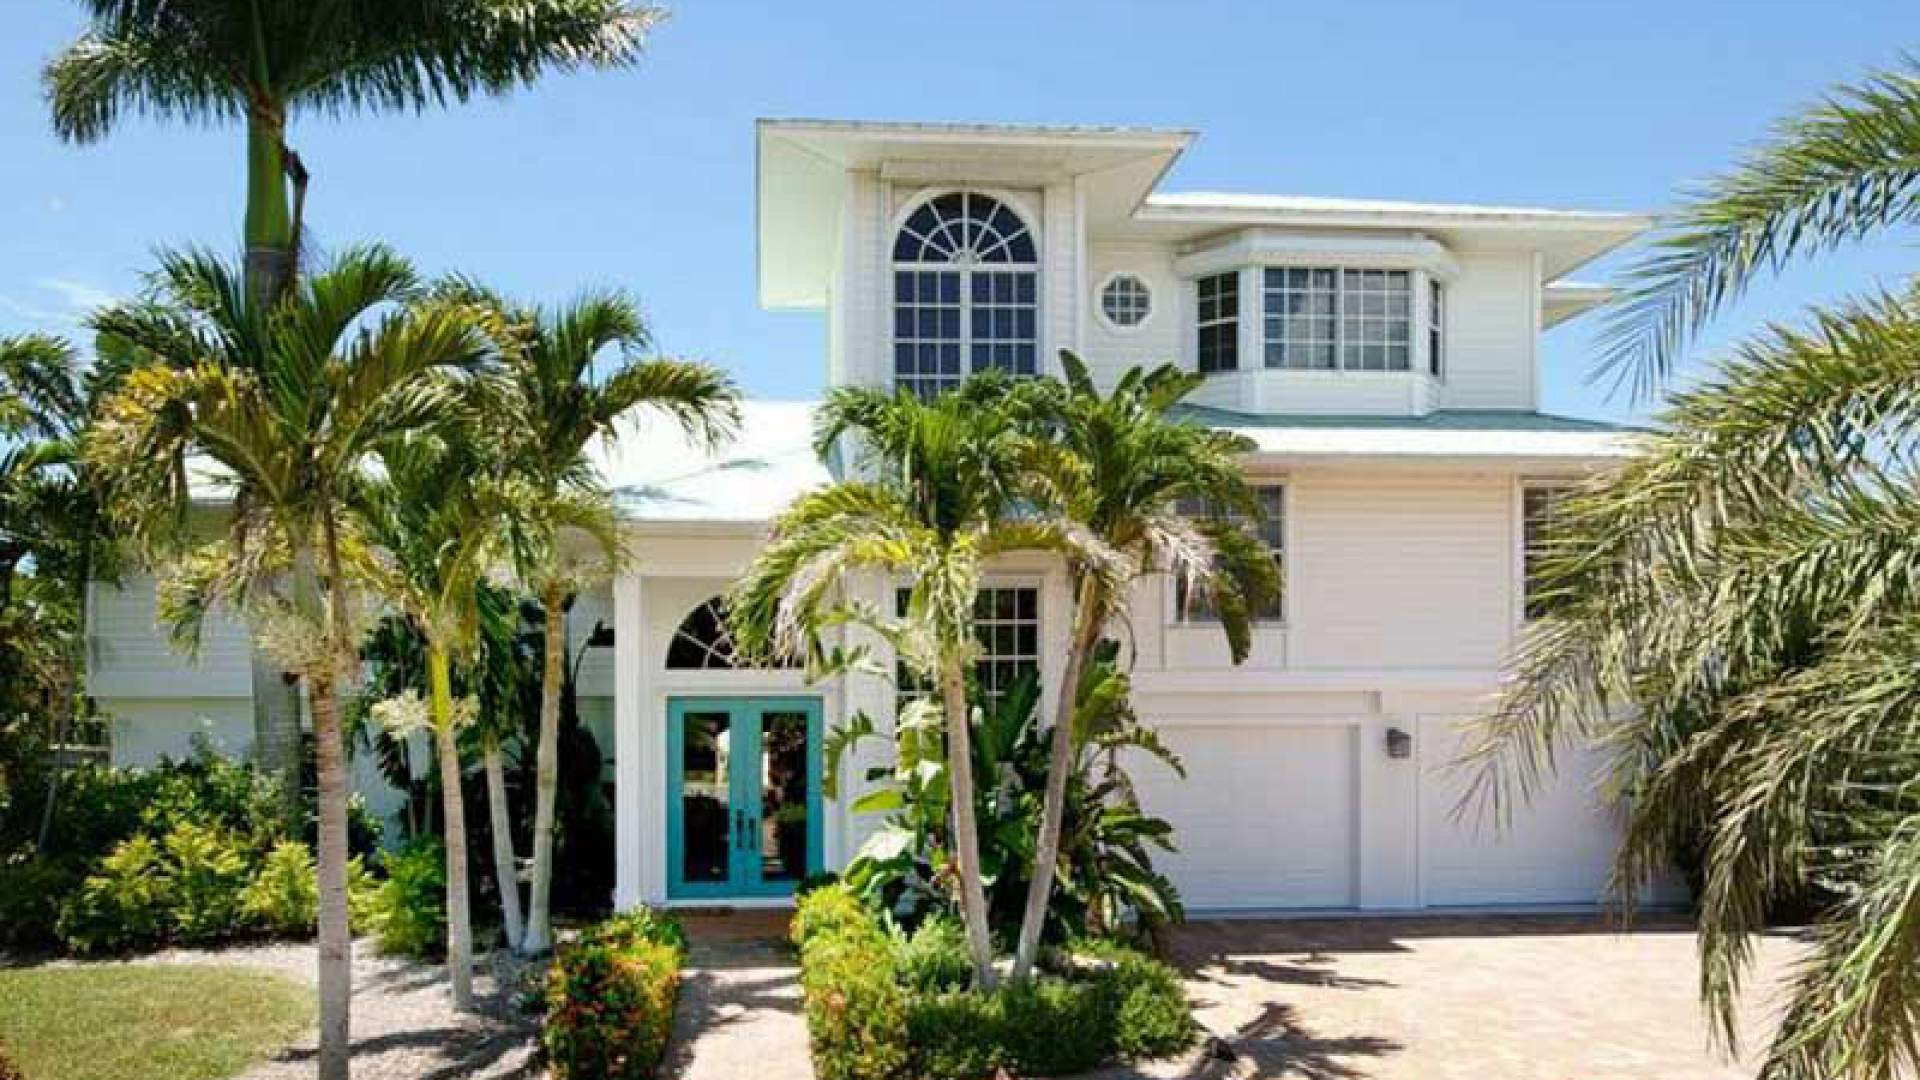 Spend a dream vacation in this beautiful Key West style home, with a prime location on Pelican Bay